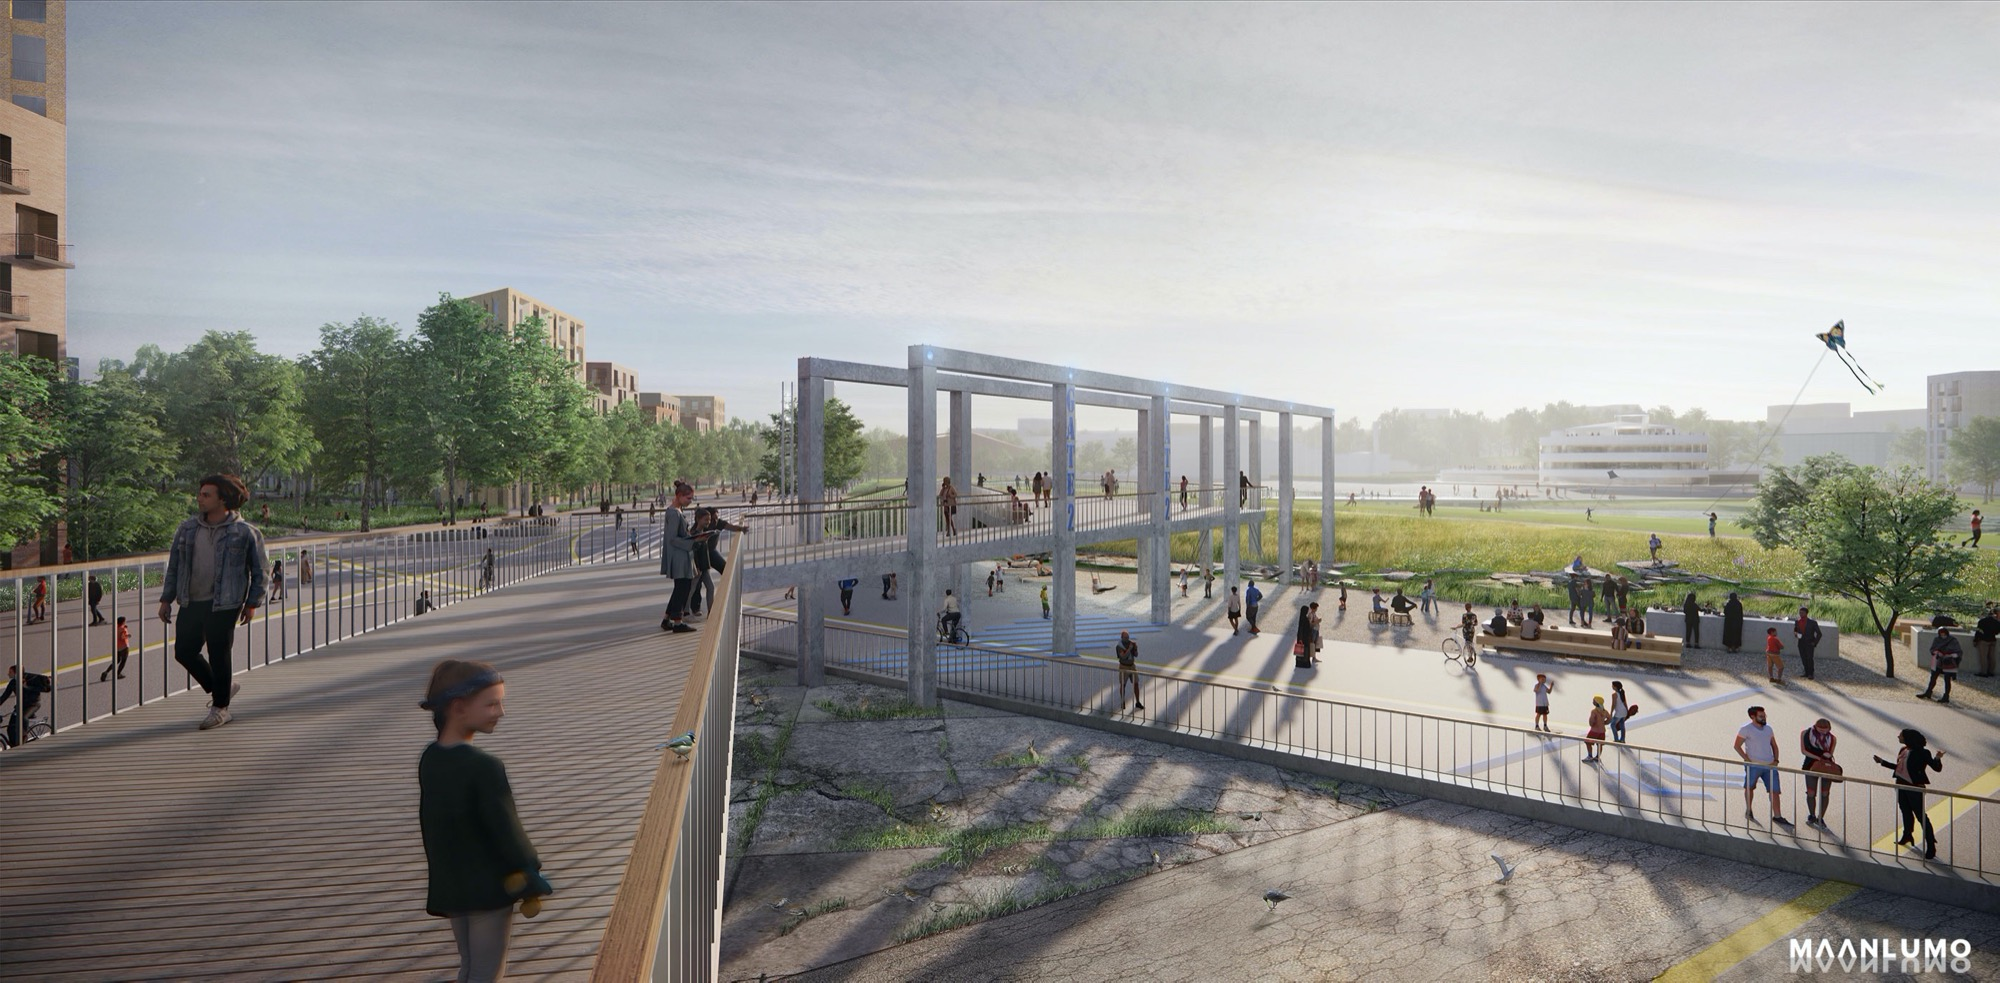 Maanlumo Wins The International Ideas Competition For Lentoasemanpuisto In Malmi With The Proposal ´Crossing Horizons´